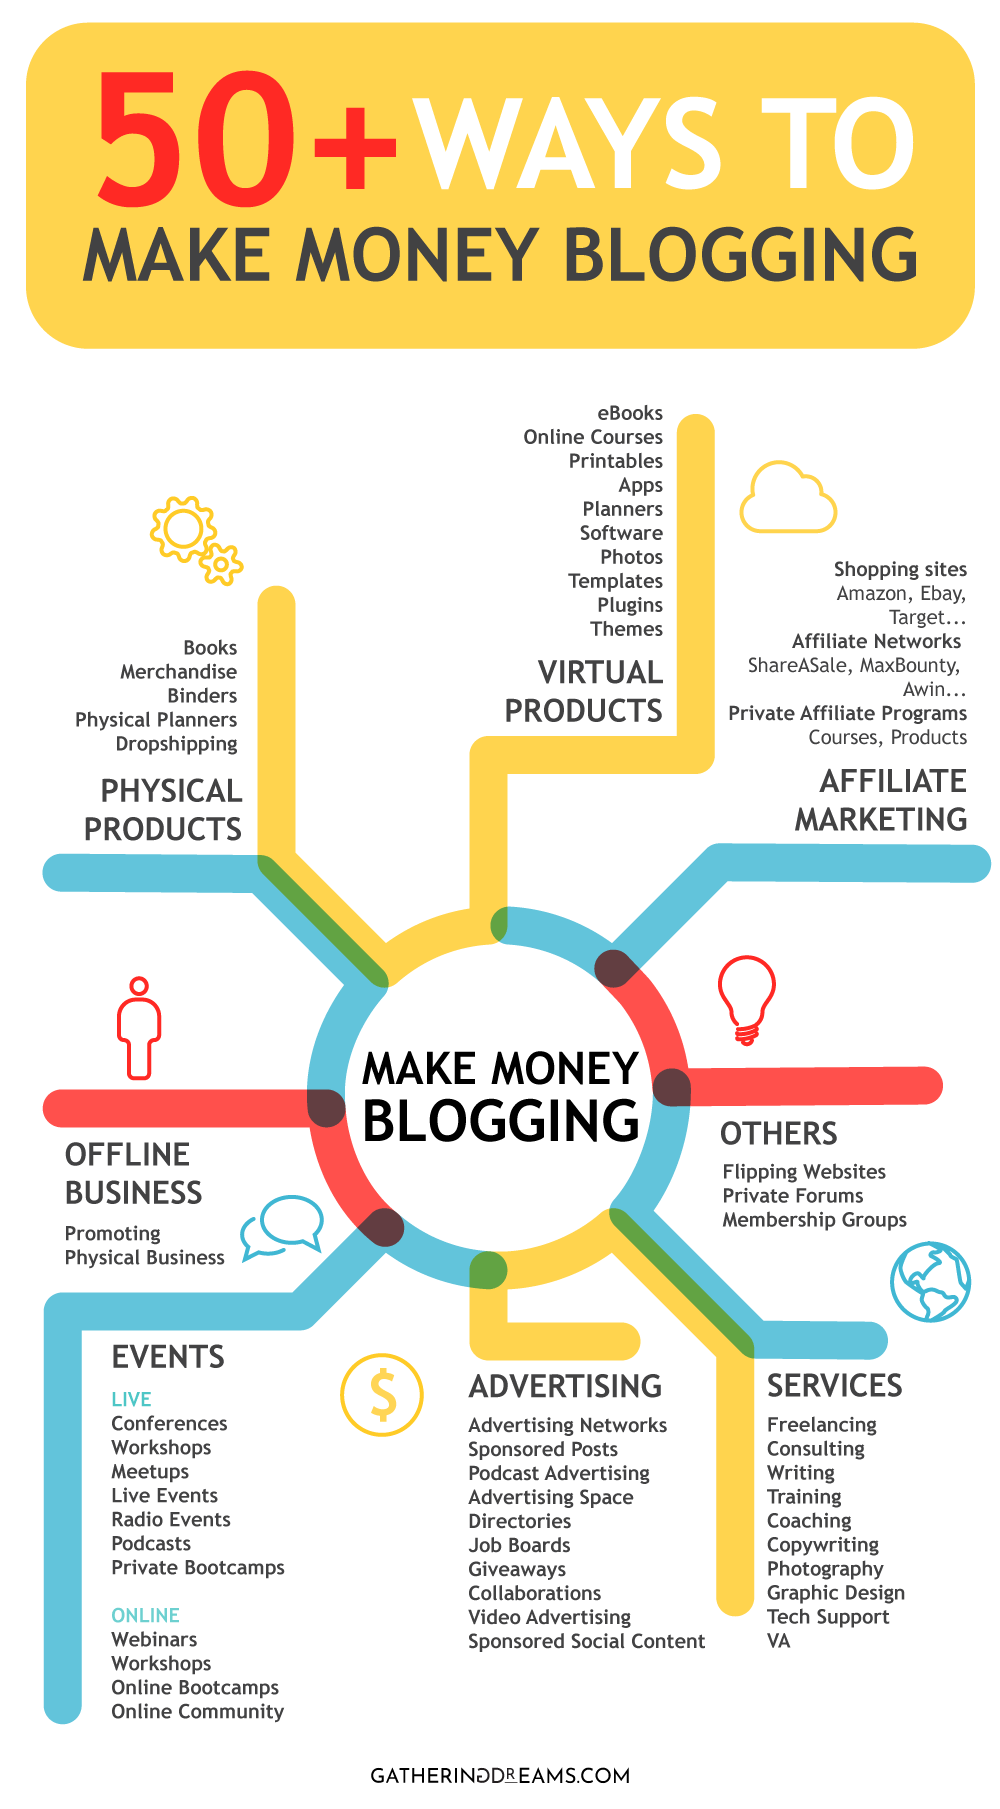 How to make money blogging infographic | Discover 50+ ways to make money blogging: Advertising, Affiliate Marketing, Digital Products, Physical Products, Events, Offline Business and more! https://gatheringdreams.com